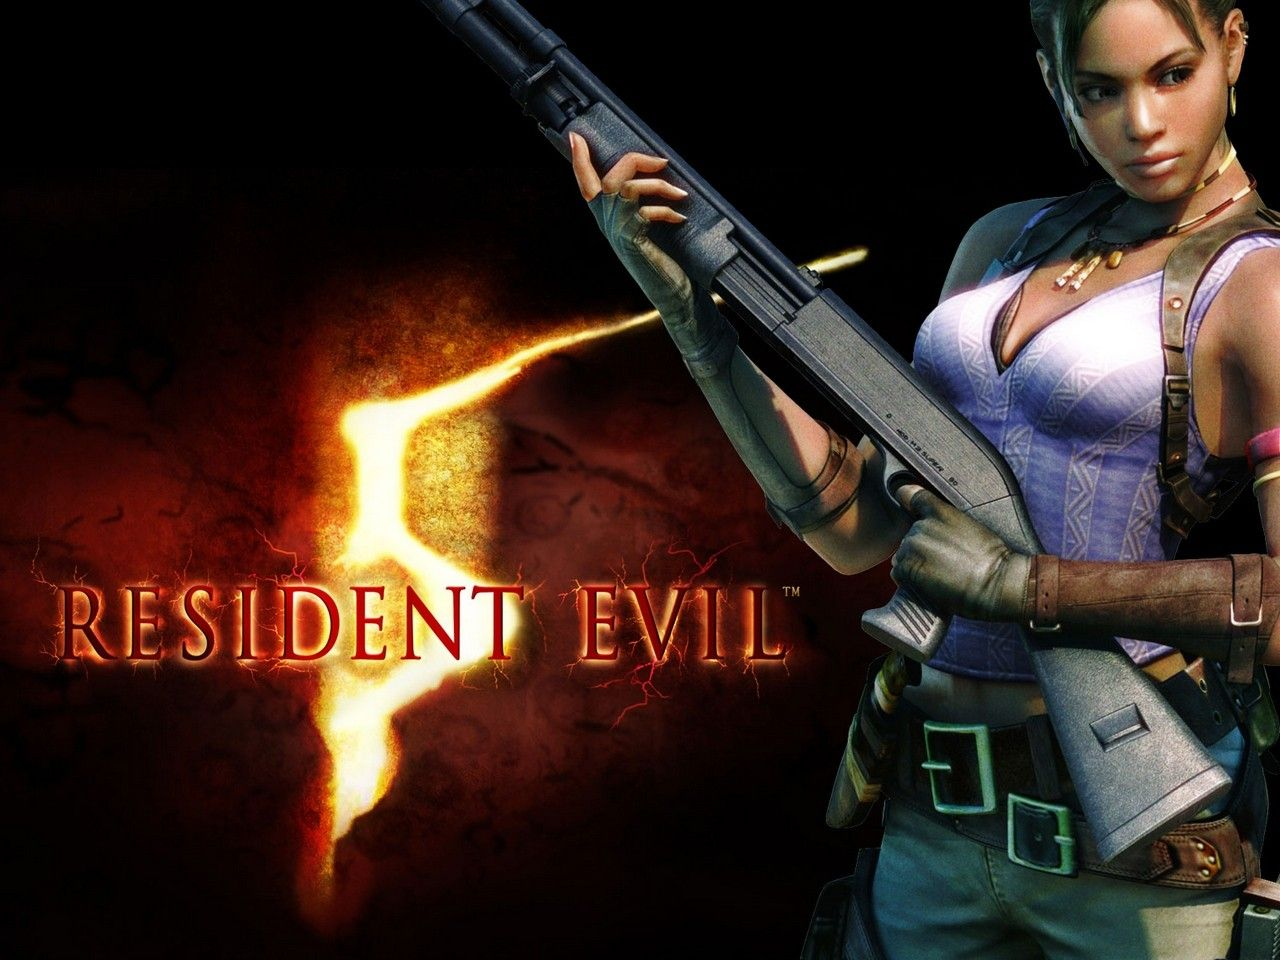 Resident evil 5 nude cheat hentia pussies